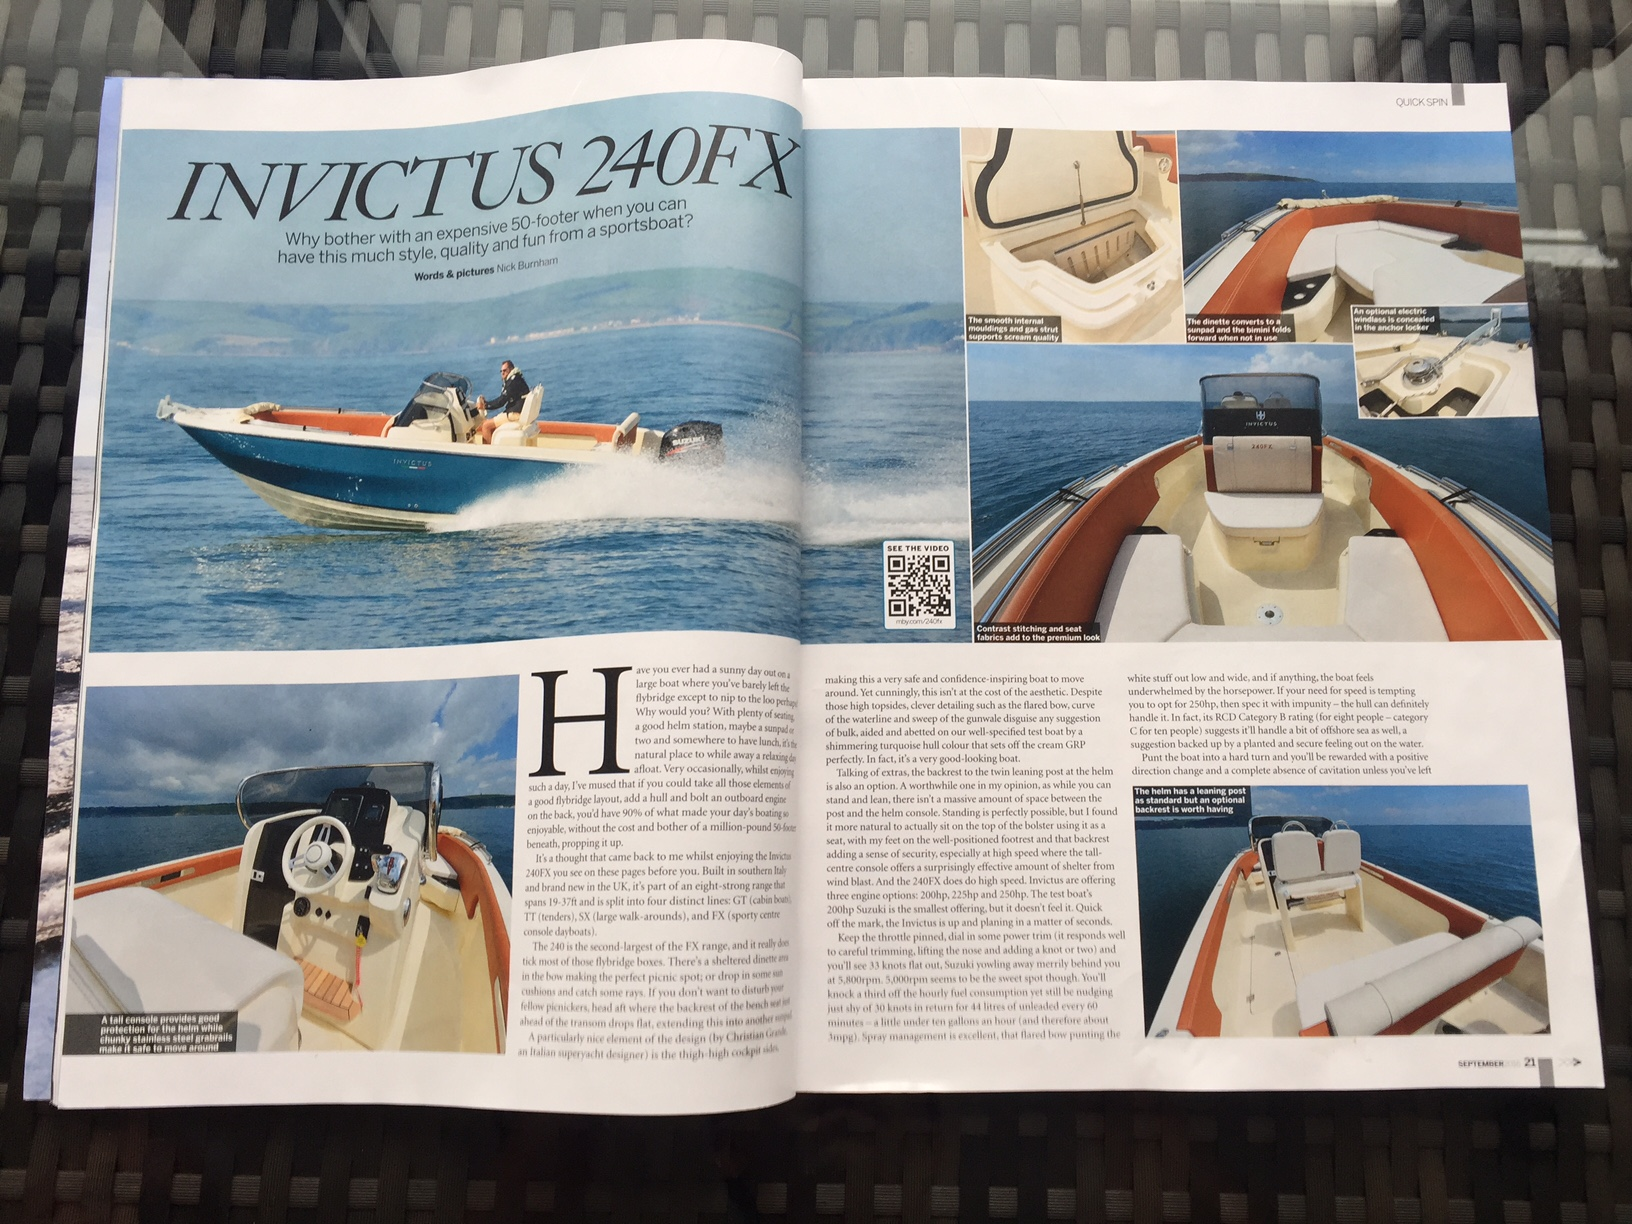 Invictus 240FX Motor Boats and Yachting August 2016 Edition.